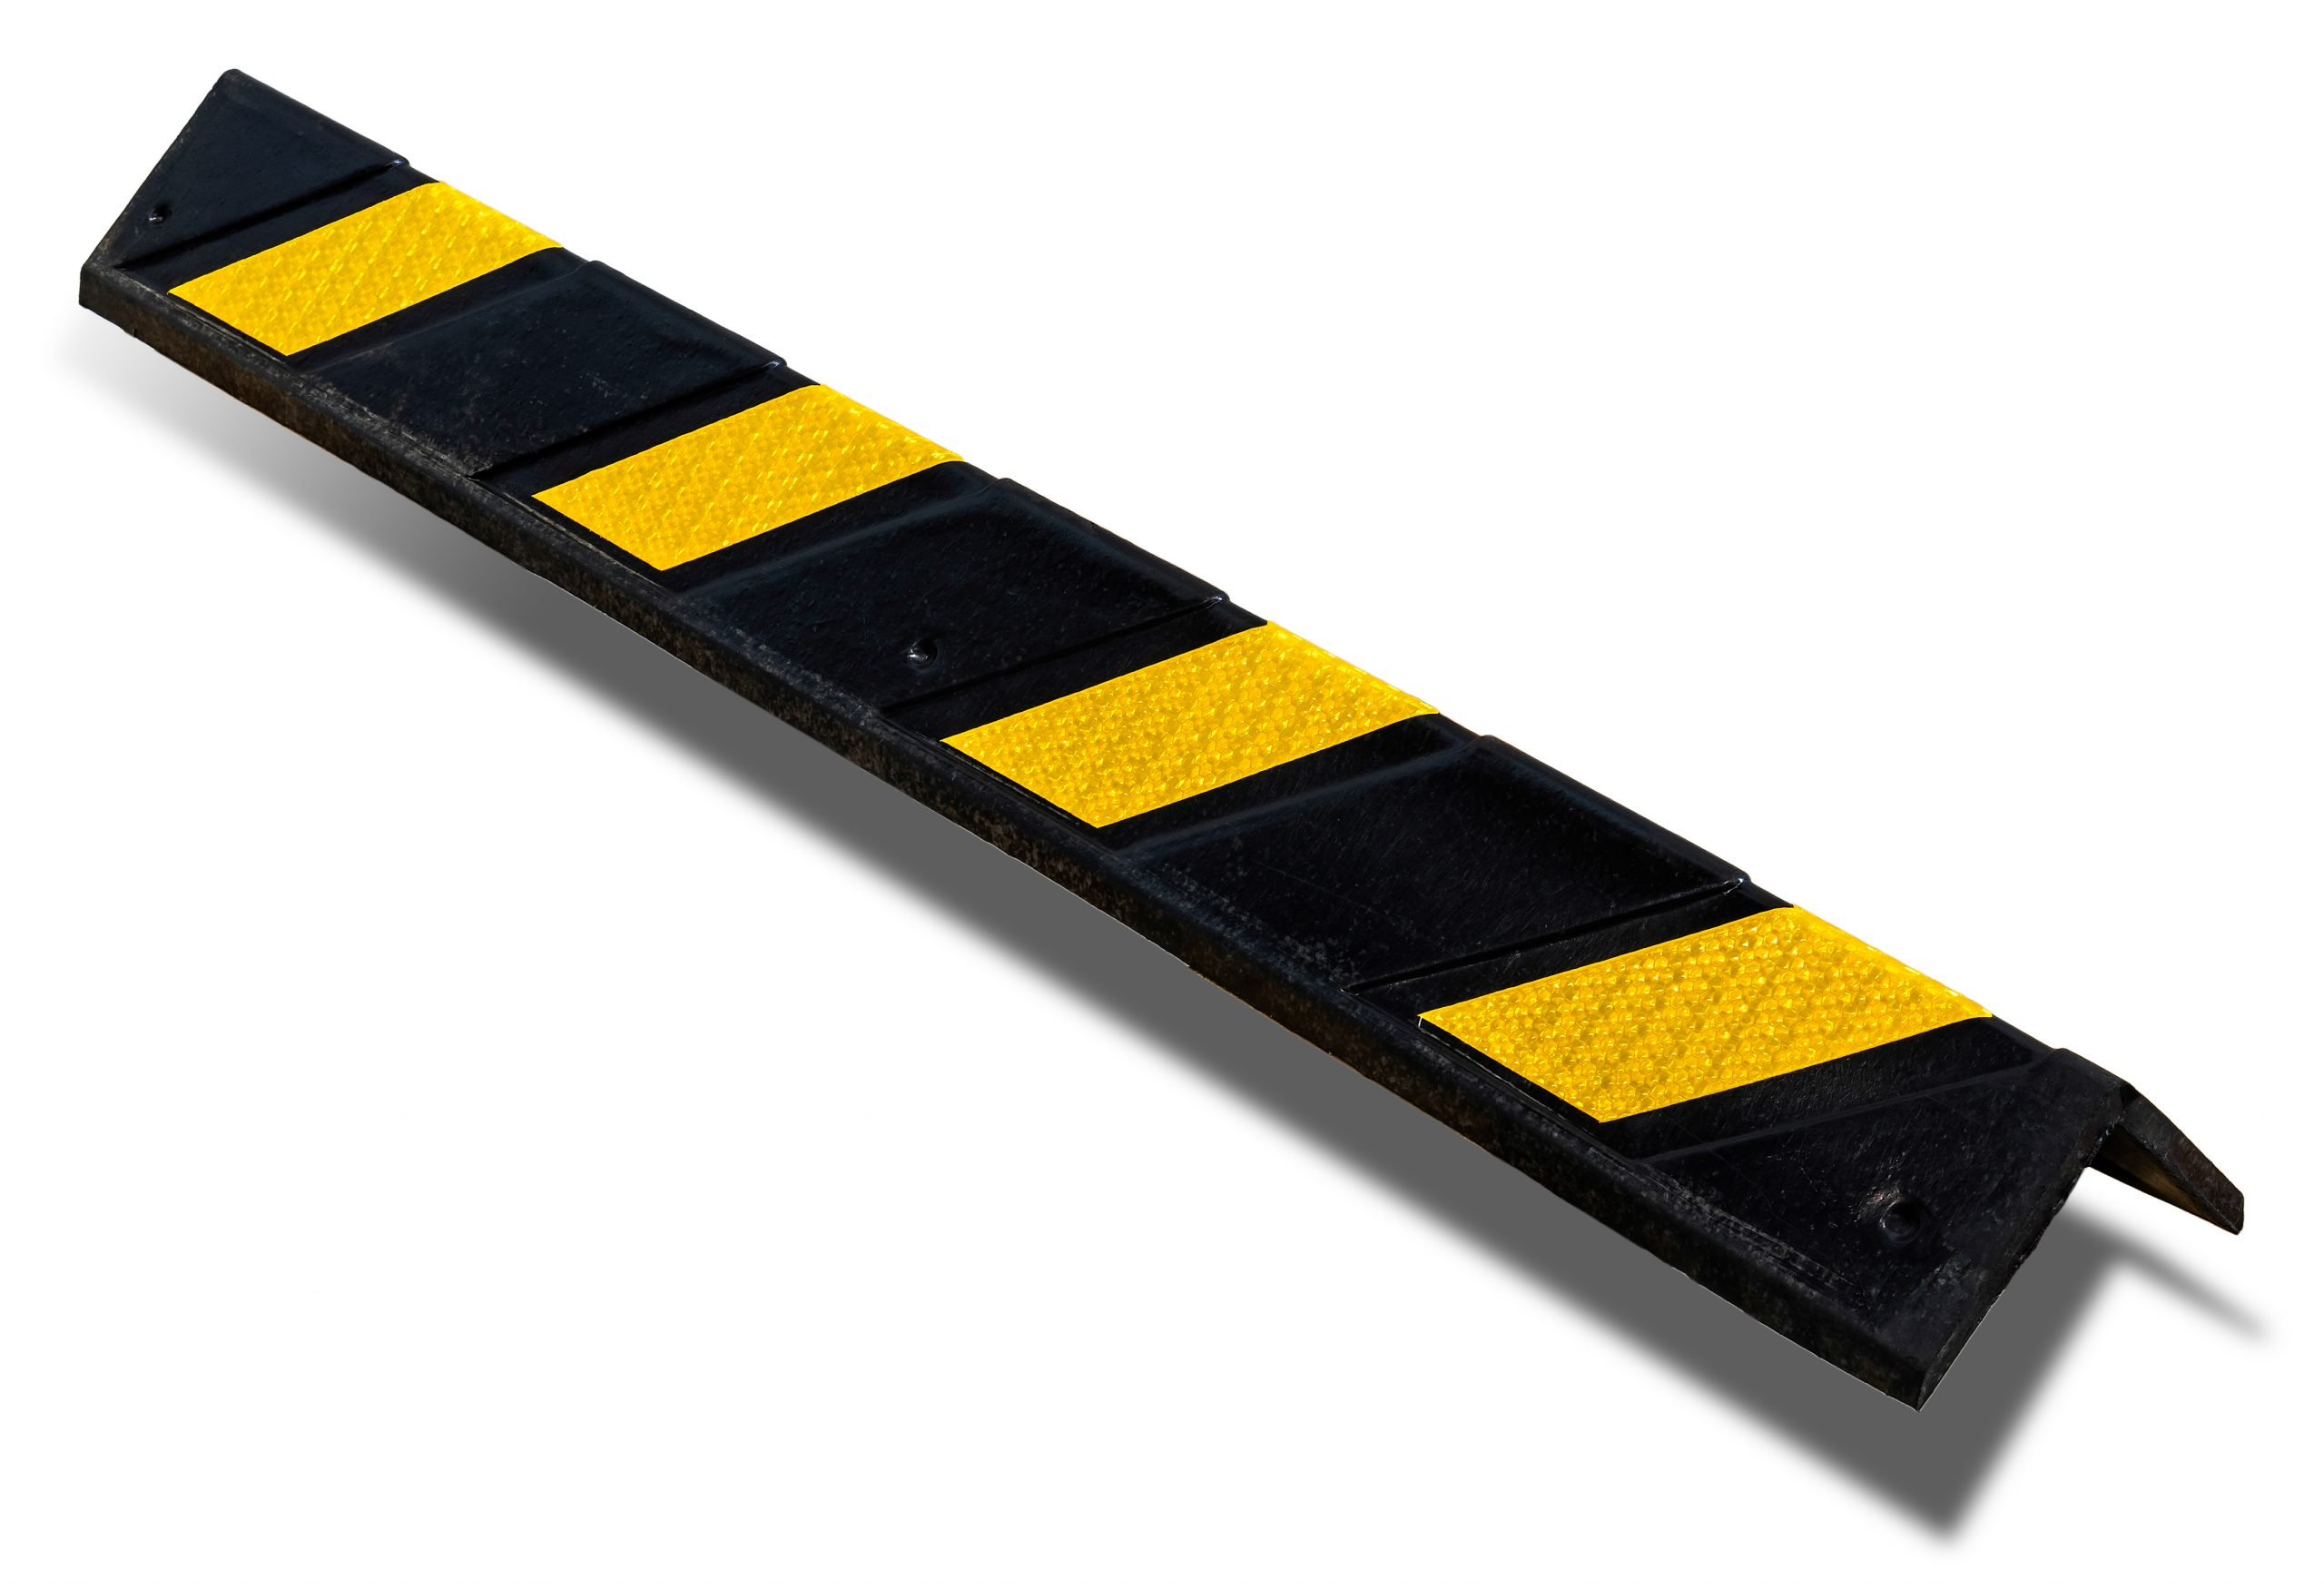 black rubber corner guard with yellow reflective tape